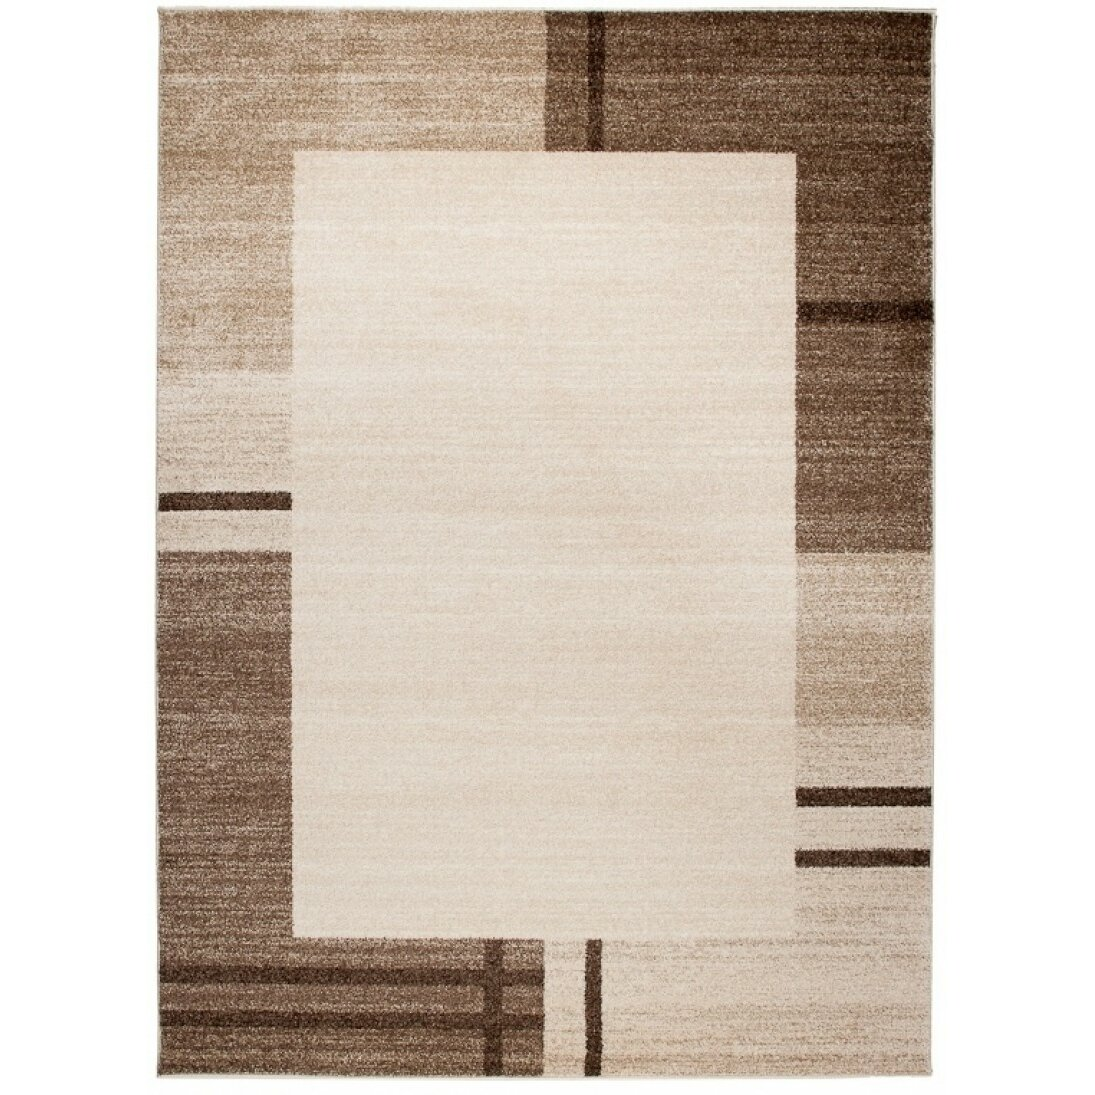 Home U0026 Haus Barite Dark Beige Area Rug Wayfair UK